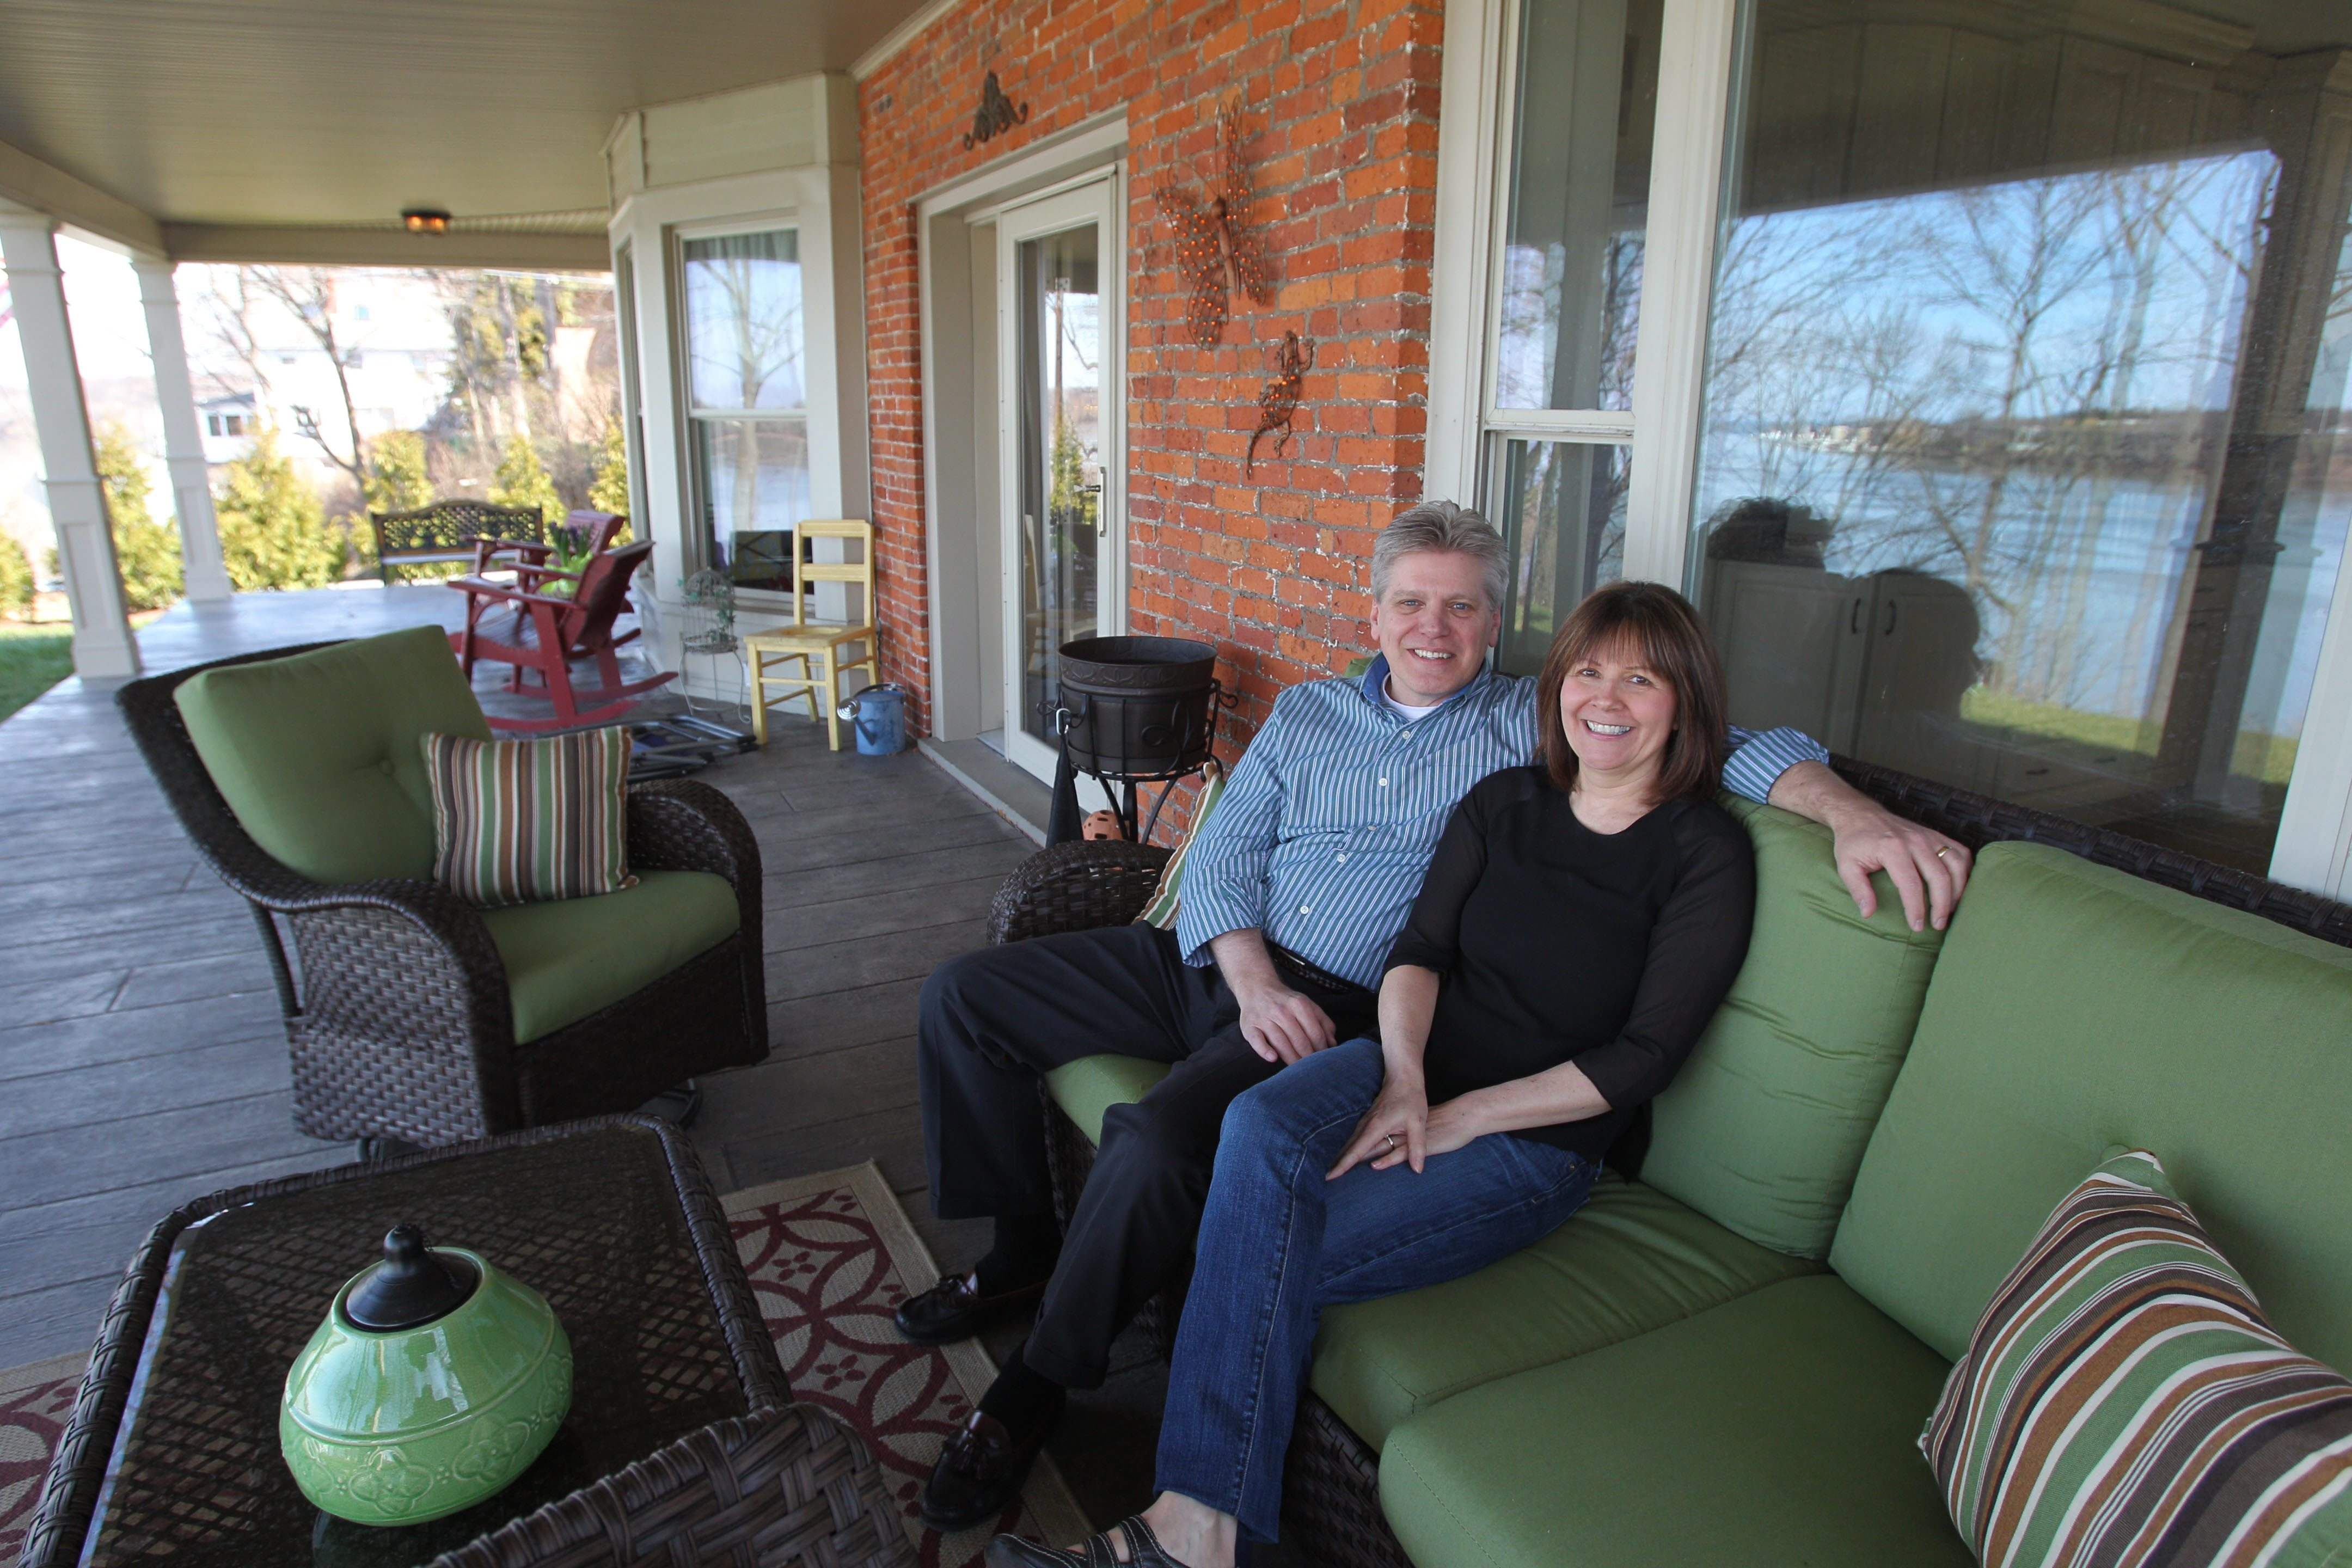 Greg and Kathy Schlaich show off their 19th Century gem on the NIagara River in Youngstown, Monday, April 15, 2013. Here, they're ion their wraparound porch overlooking the river.  (Sharon Cantillon/Buffalo News)